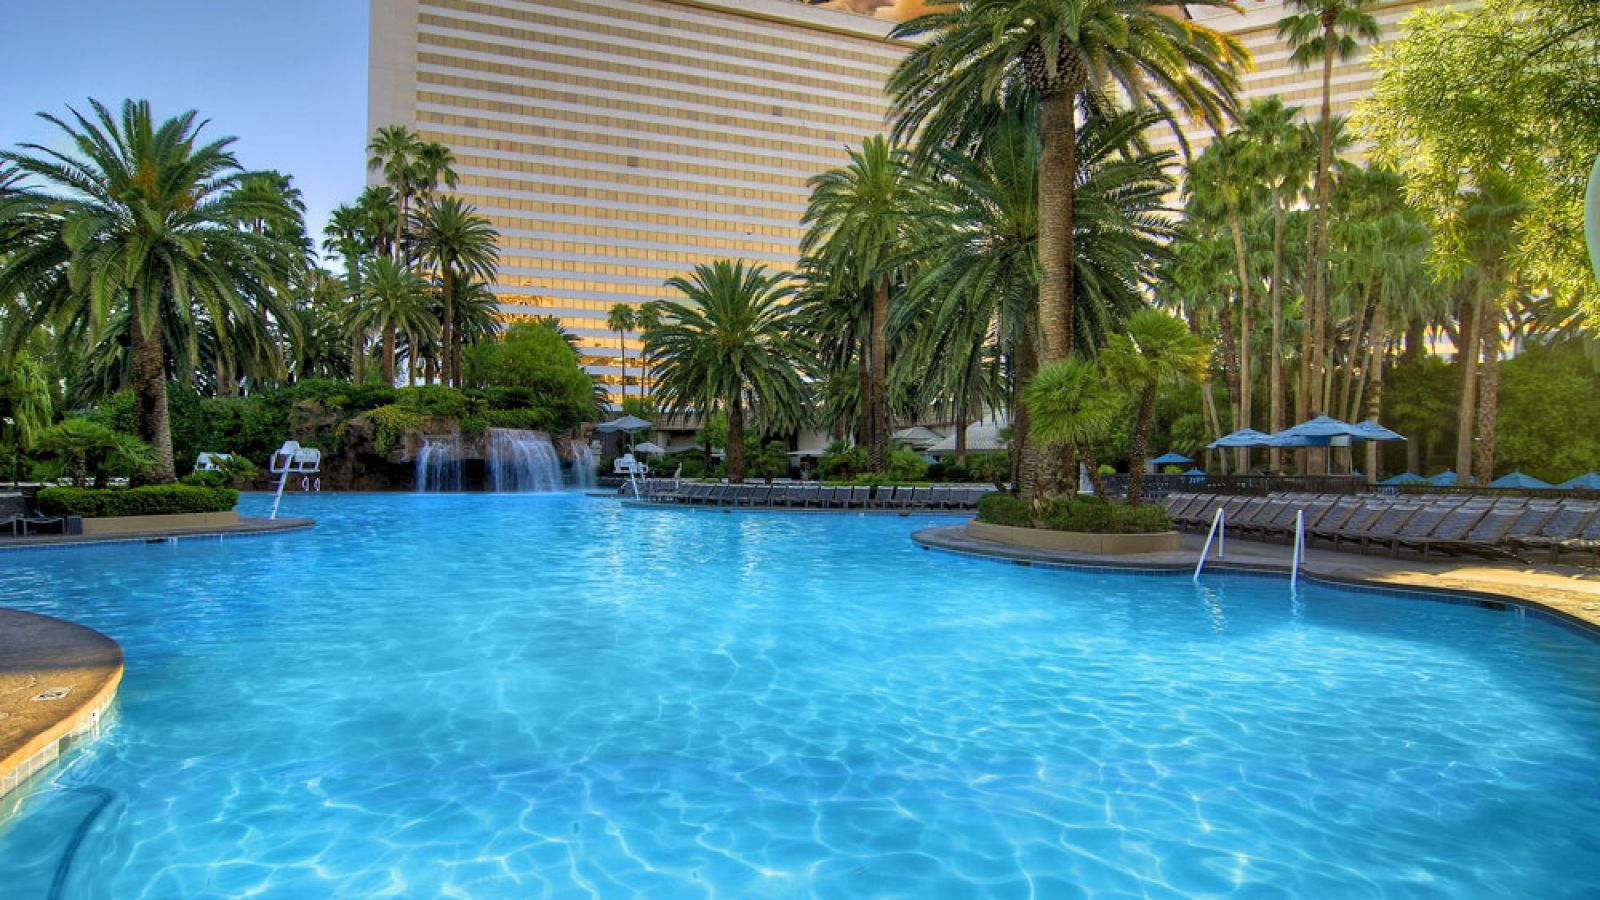 Mirage - Las Vegas glf packages